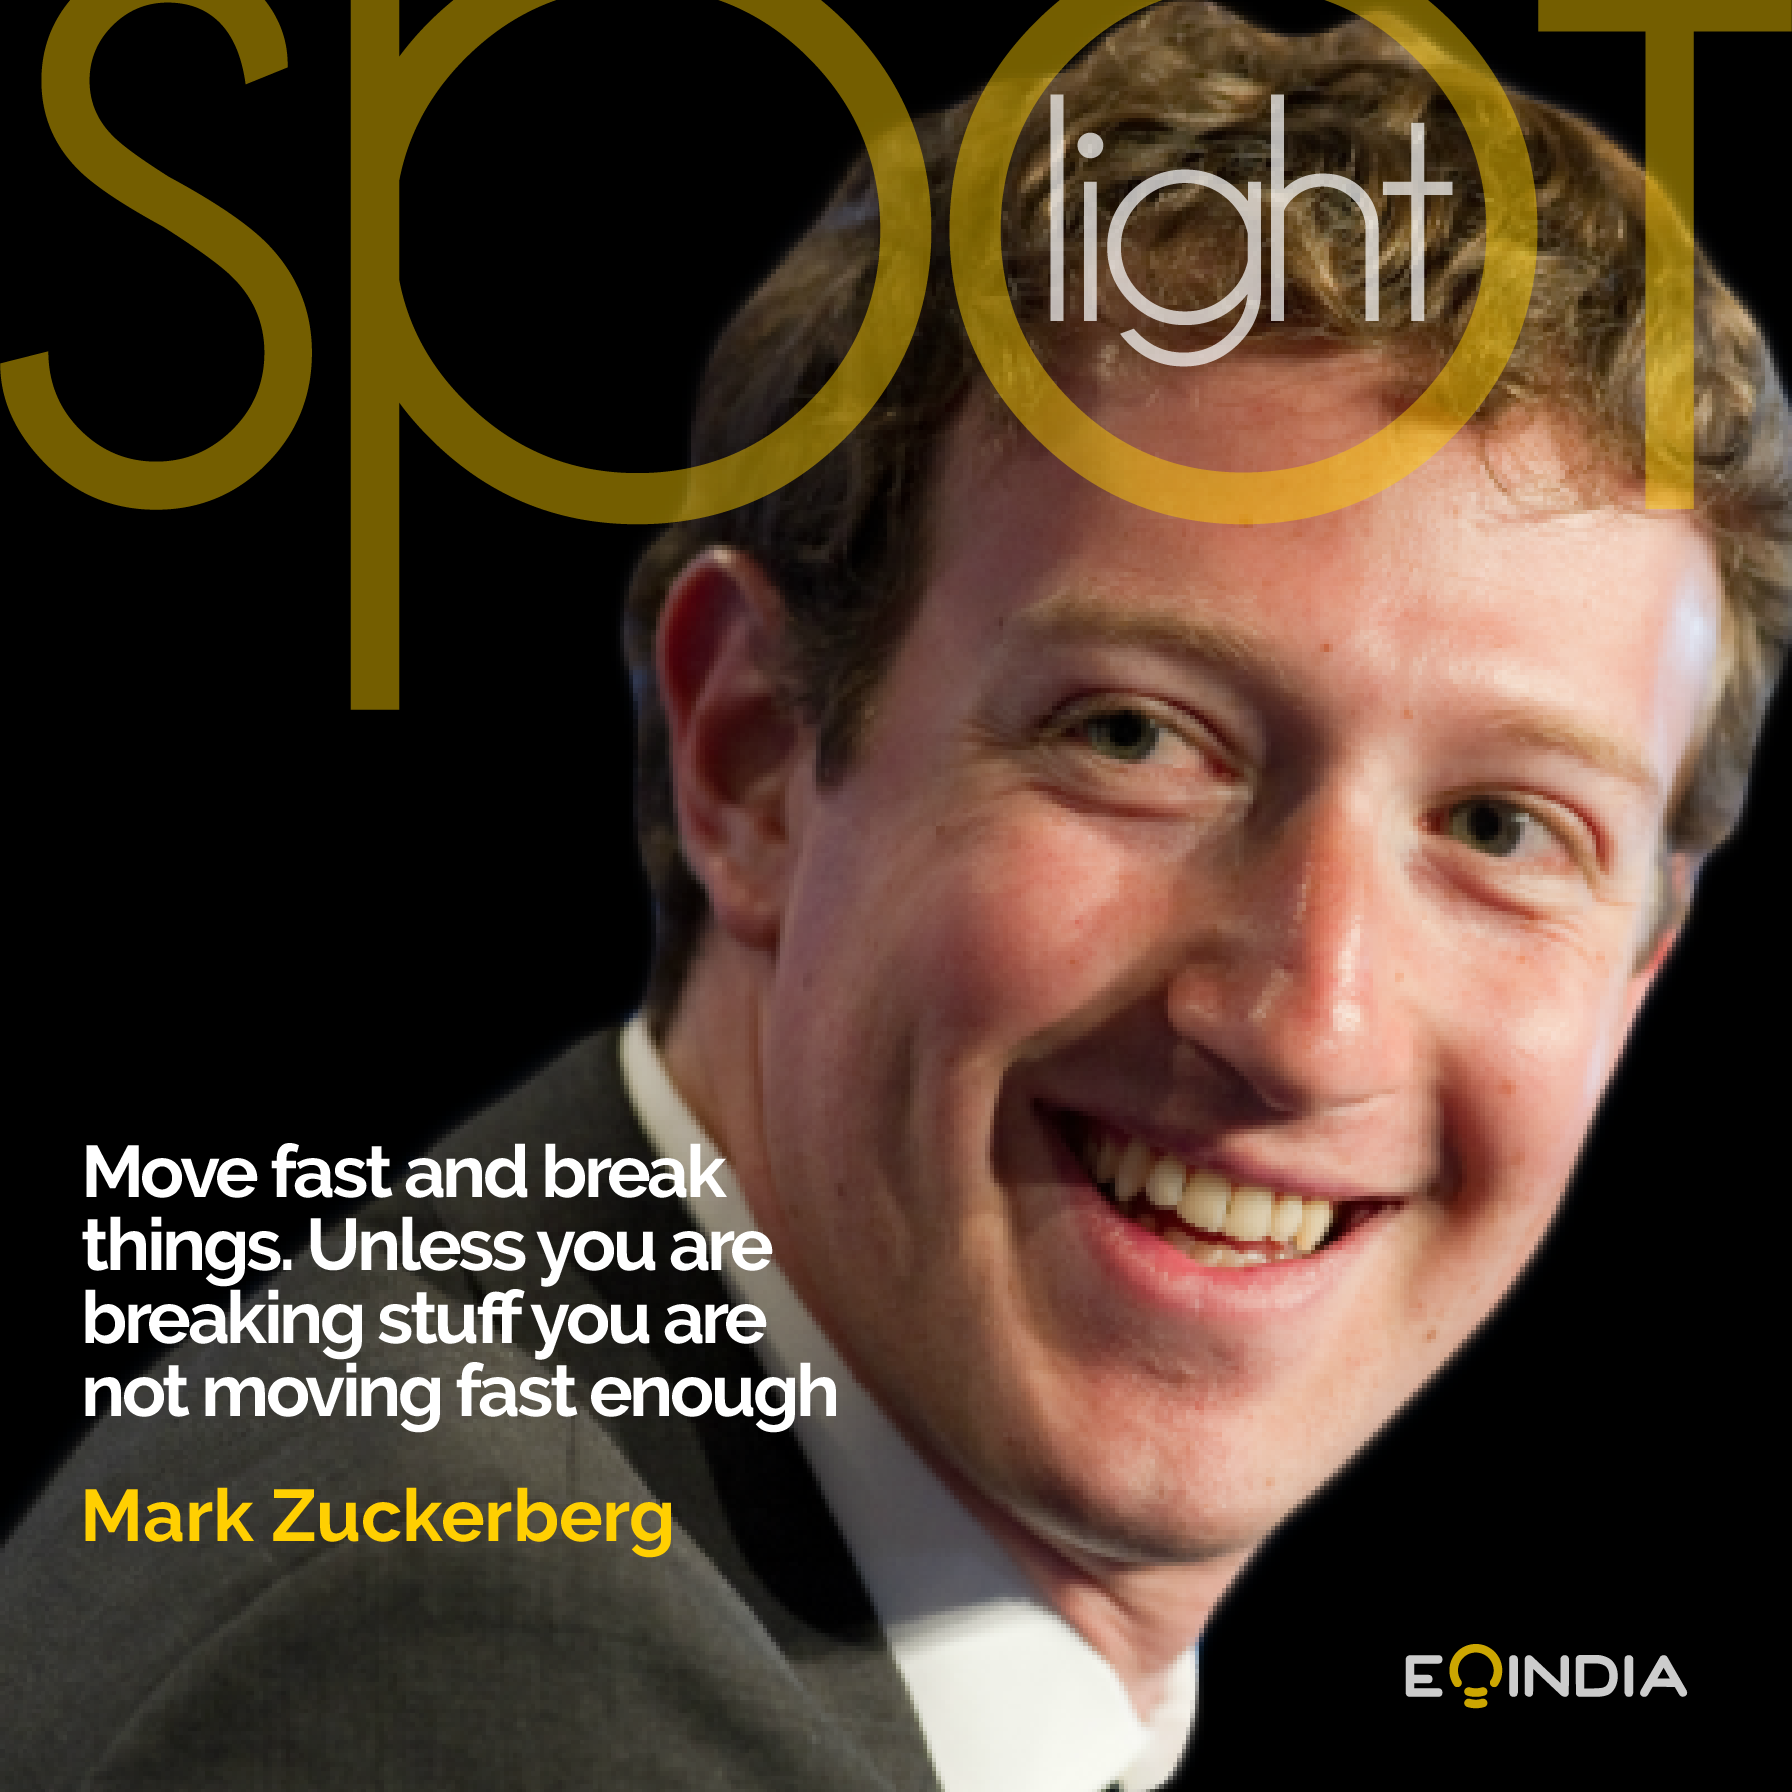 Top entrepreneurs of the world -Mark Zuckerberg